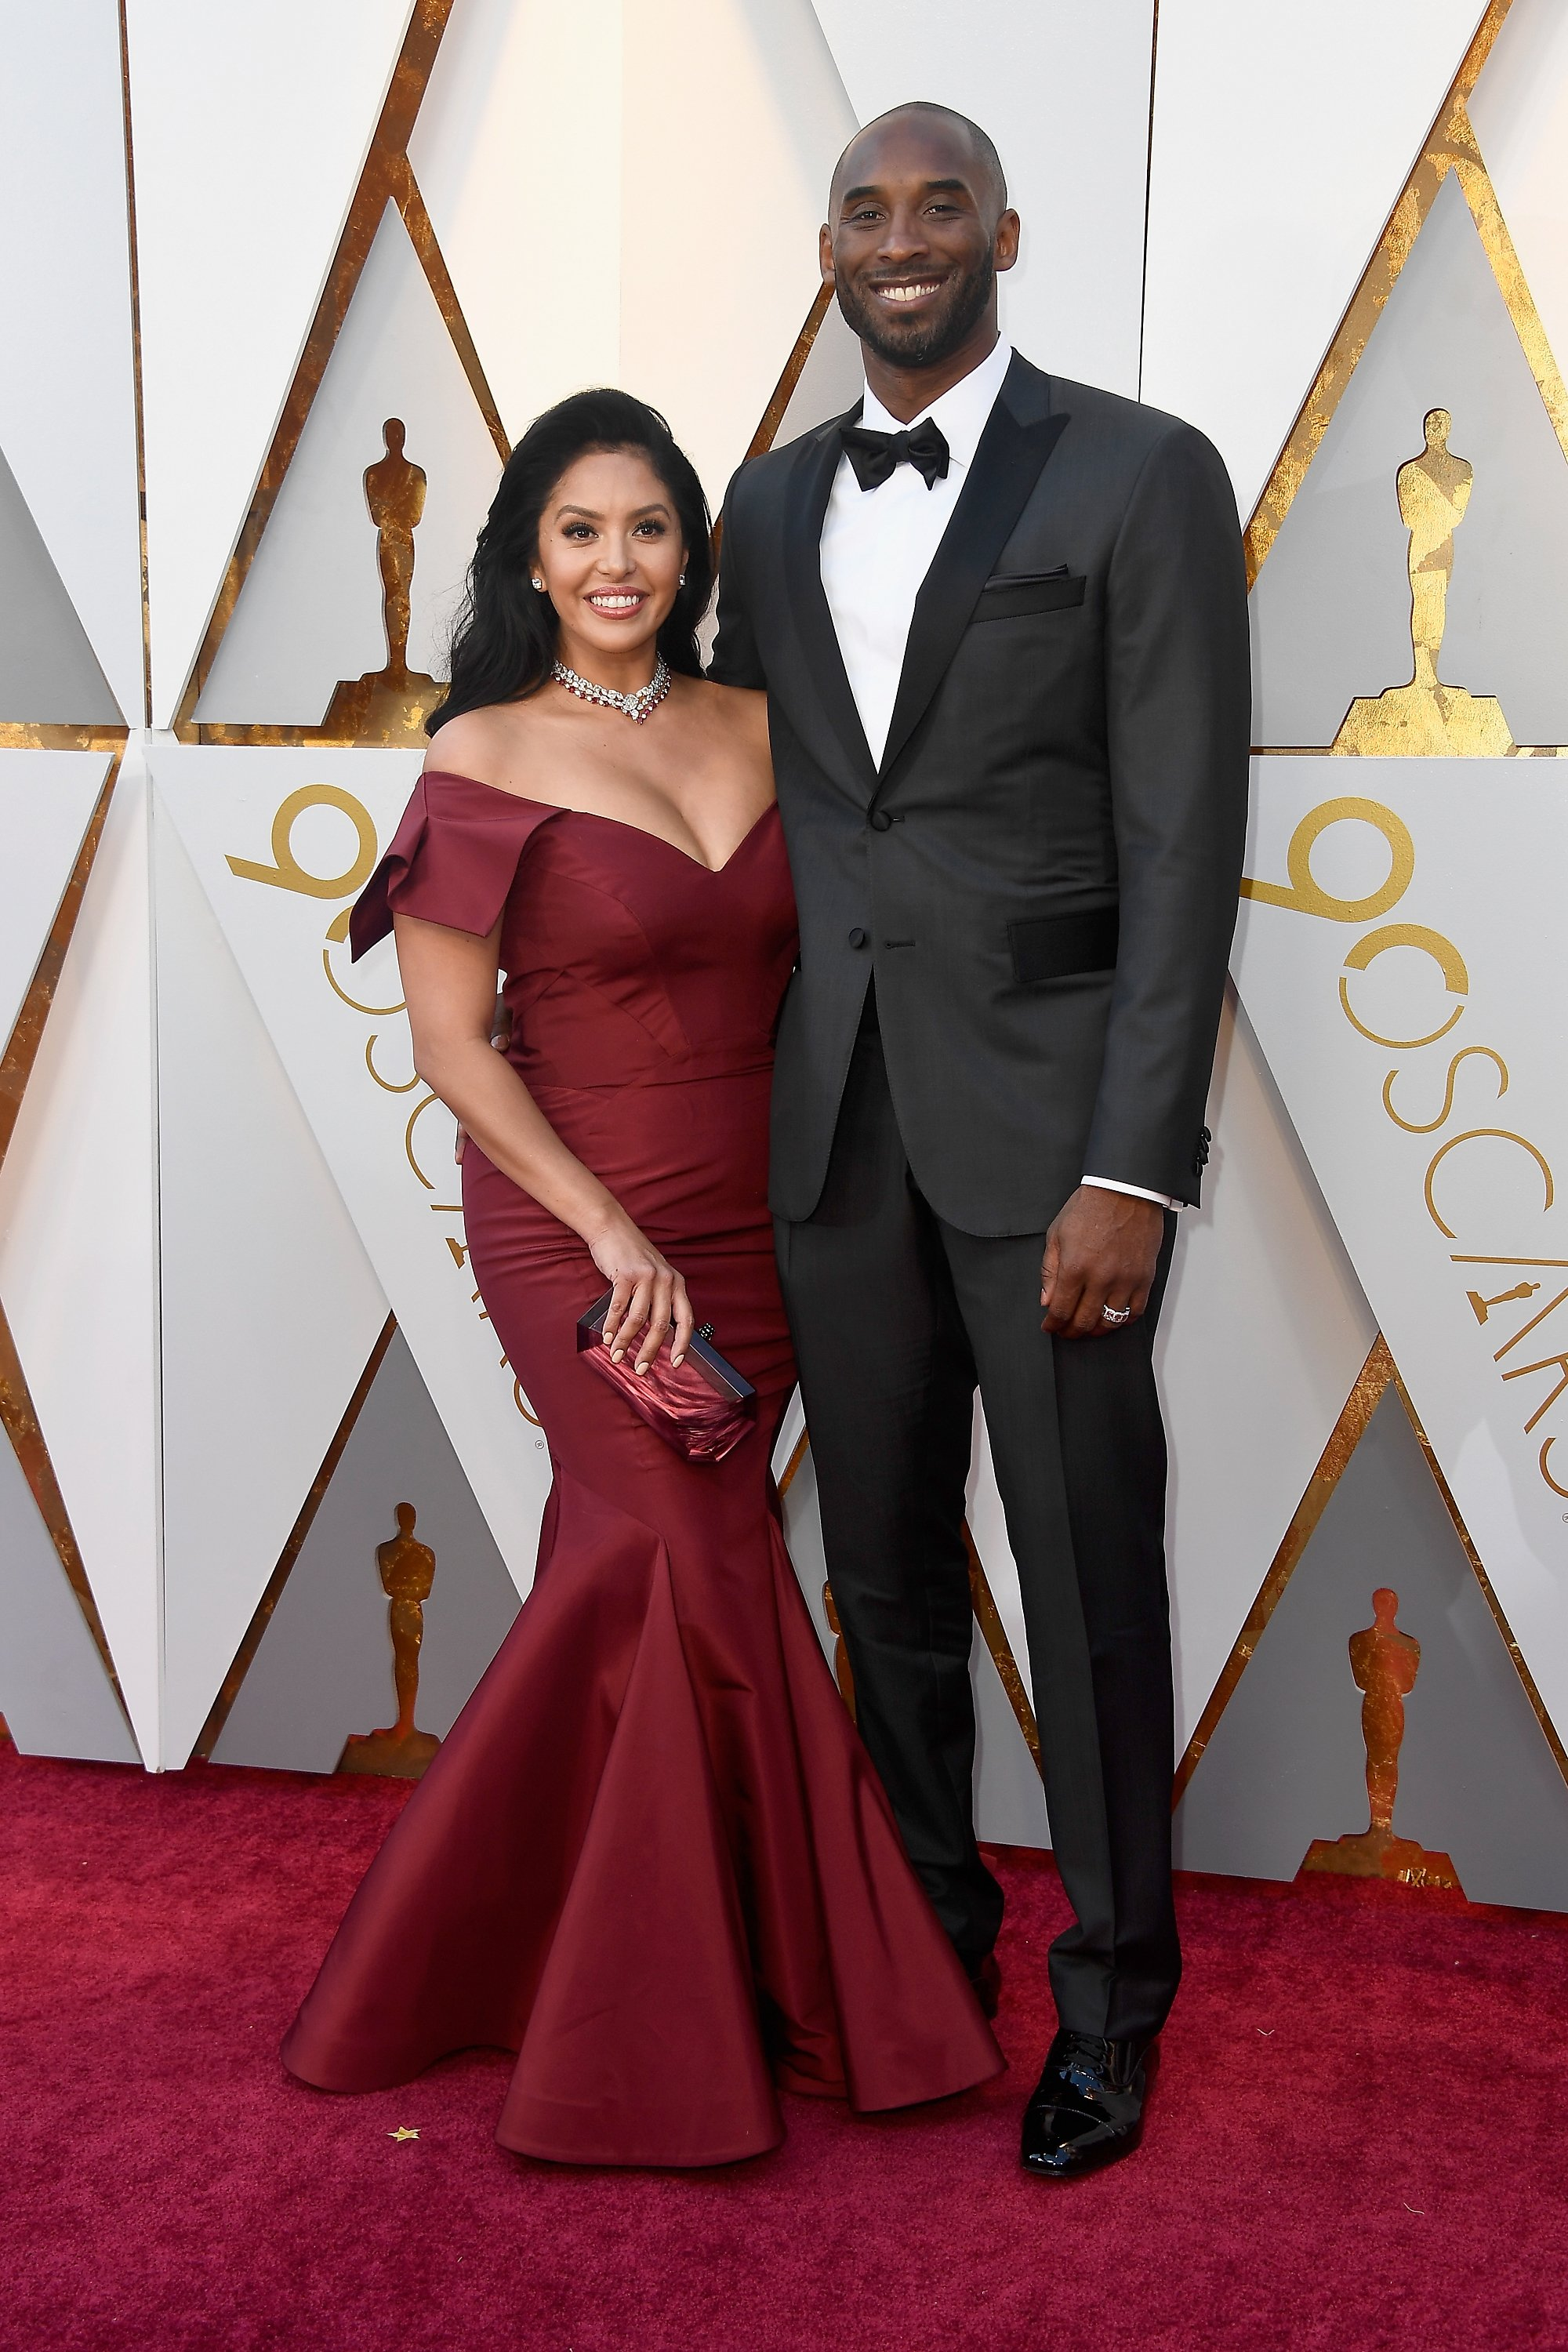 Image Source: Getty Images/Kobe and Vanessa at the Oscars